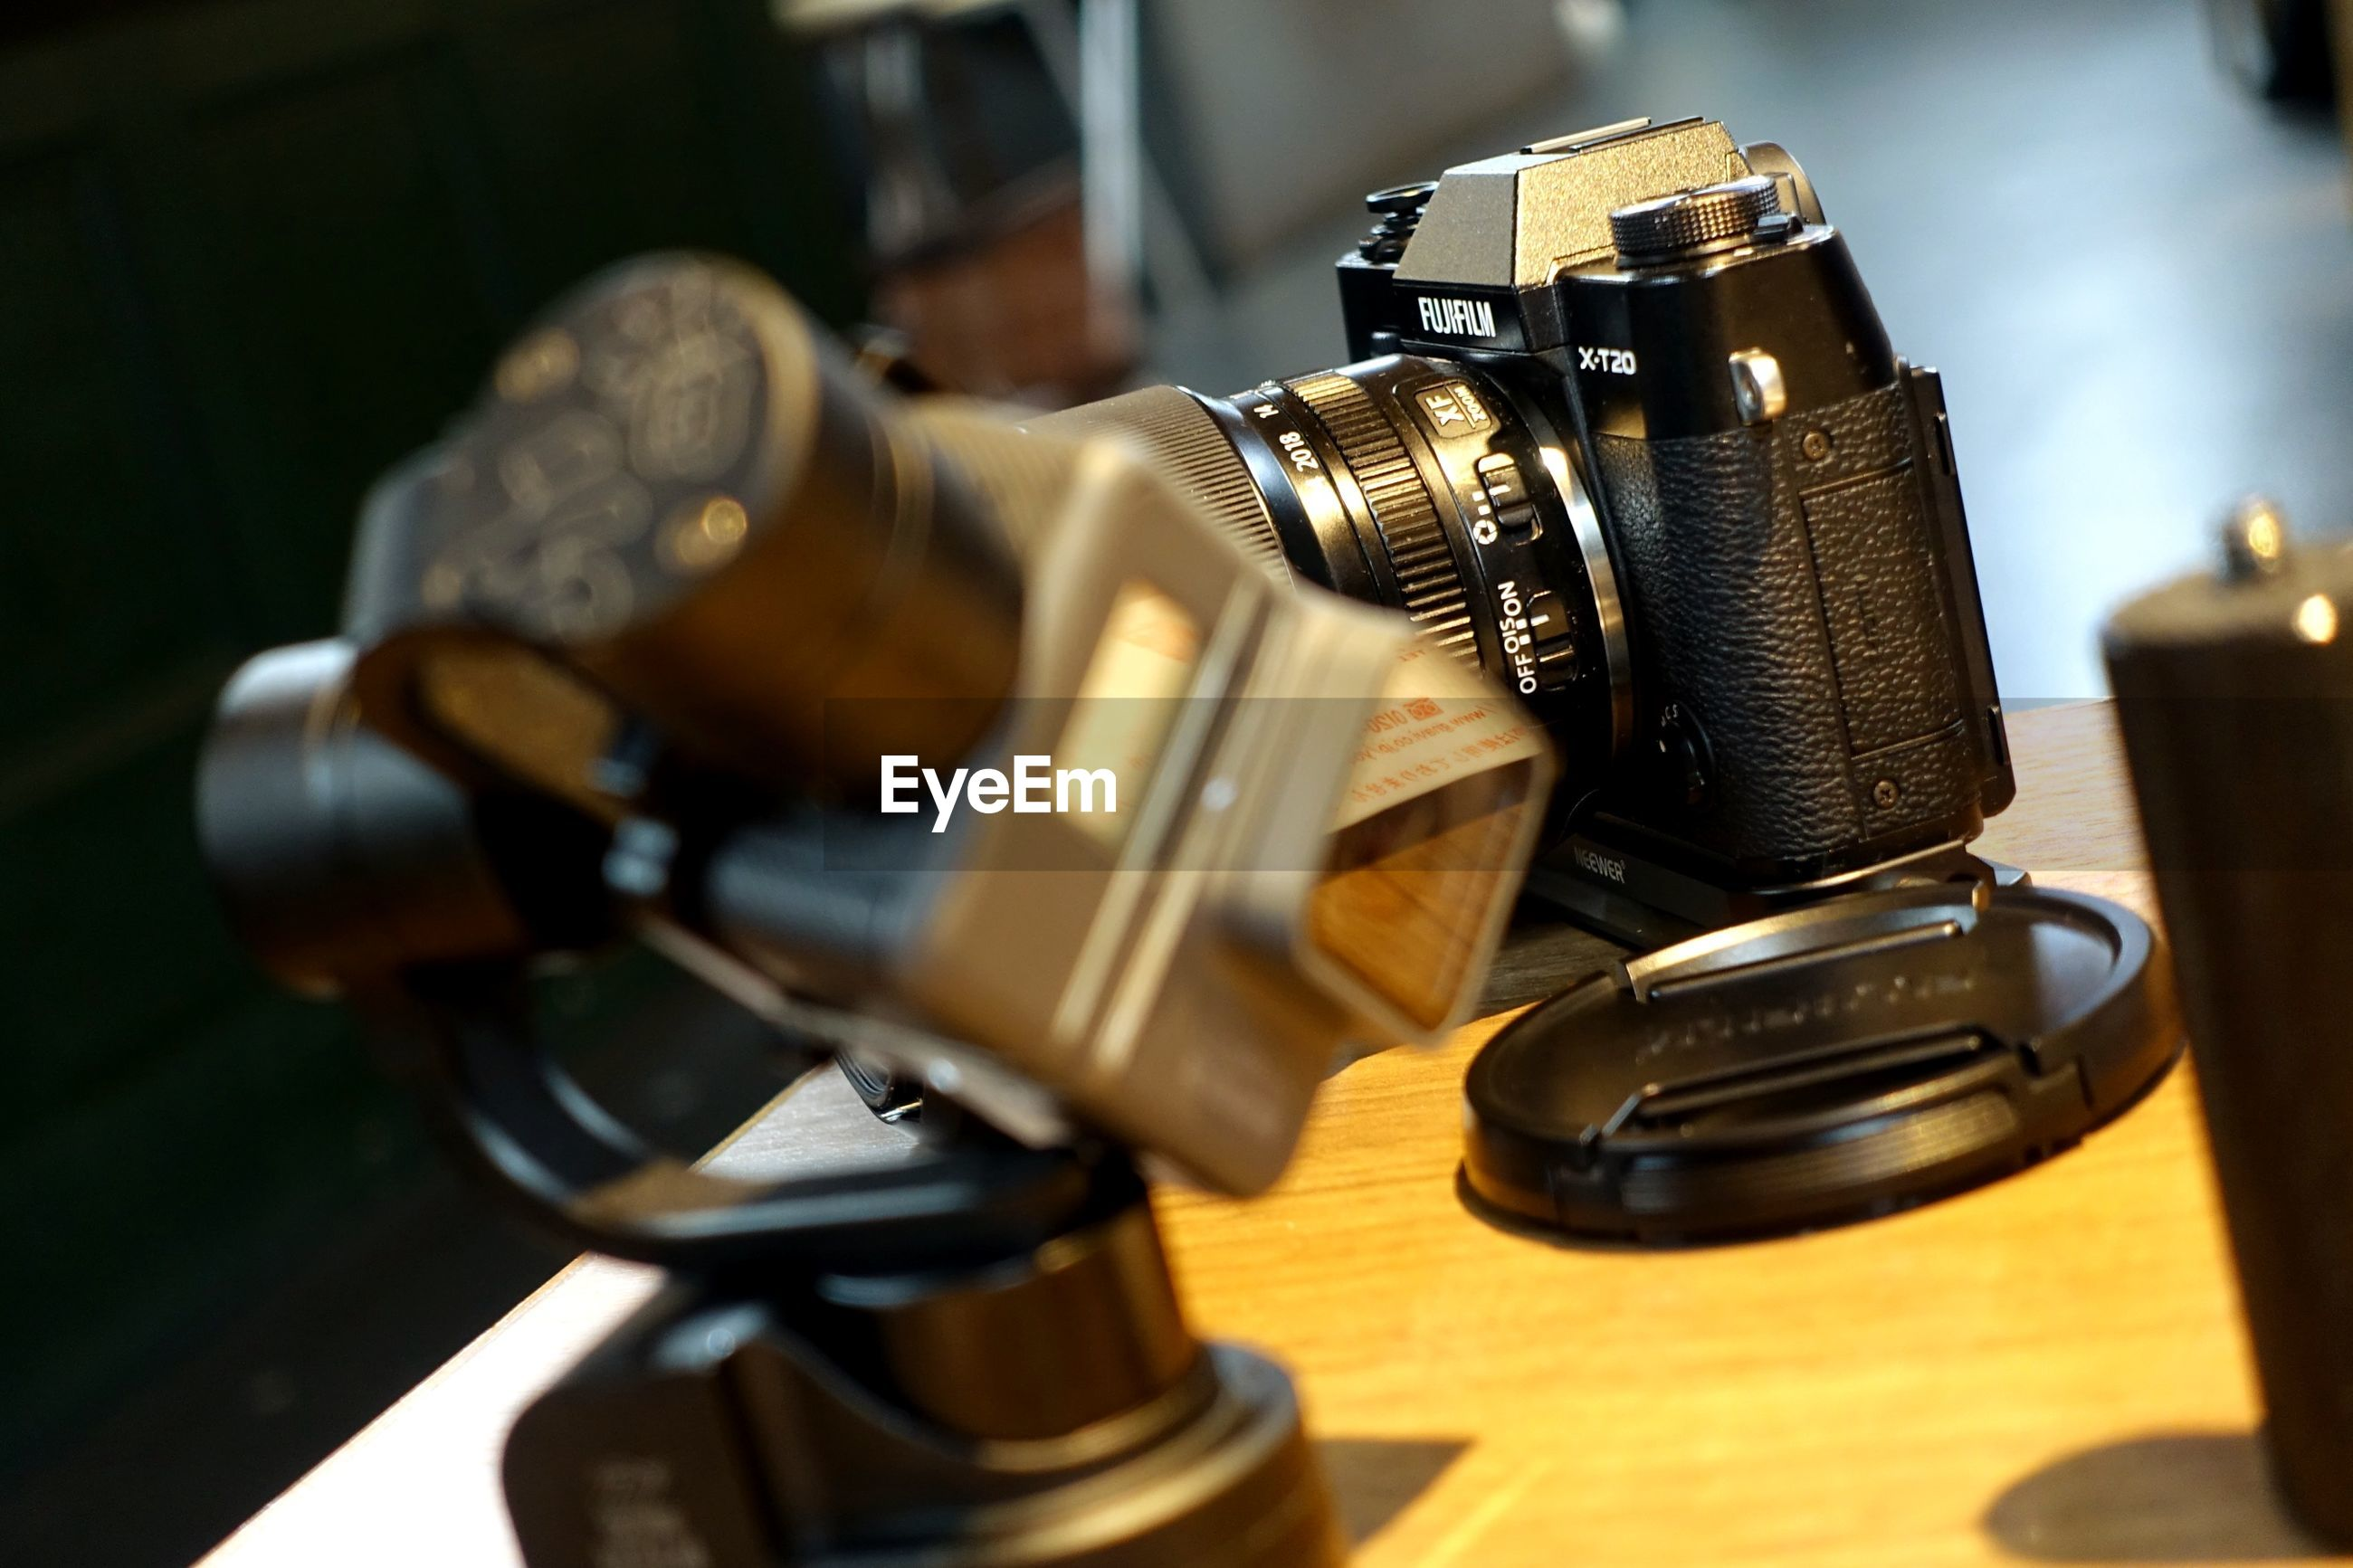 CLOSE-UP OF CAMERA ON TABLE AT NIGHTCLUB